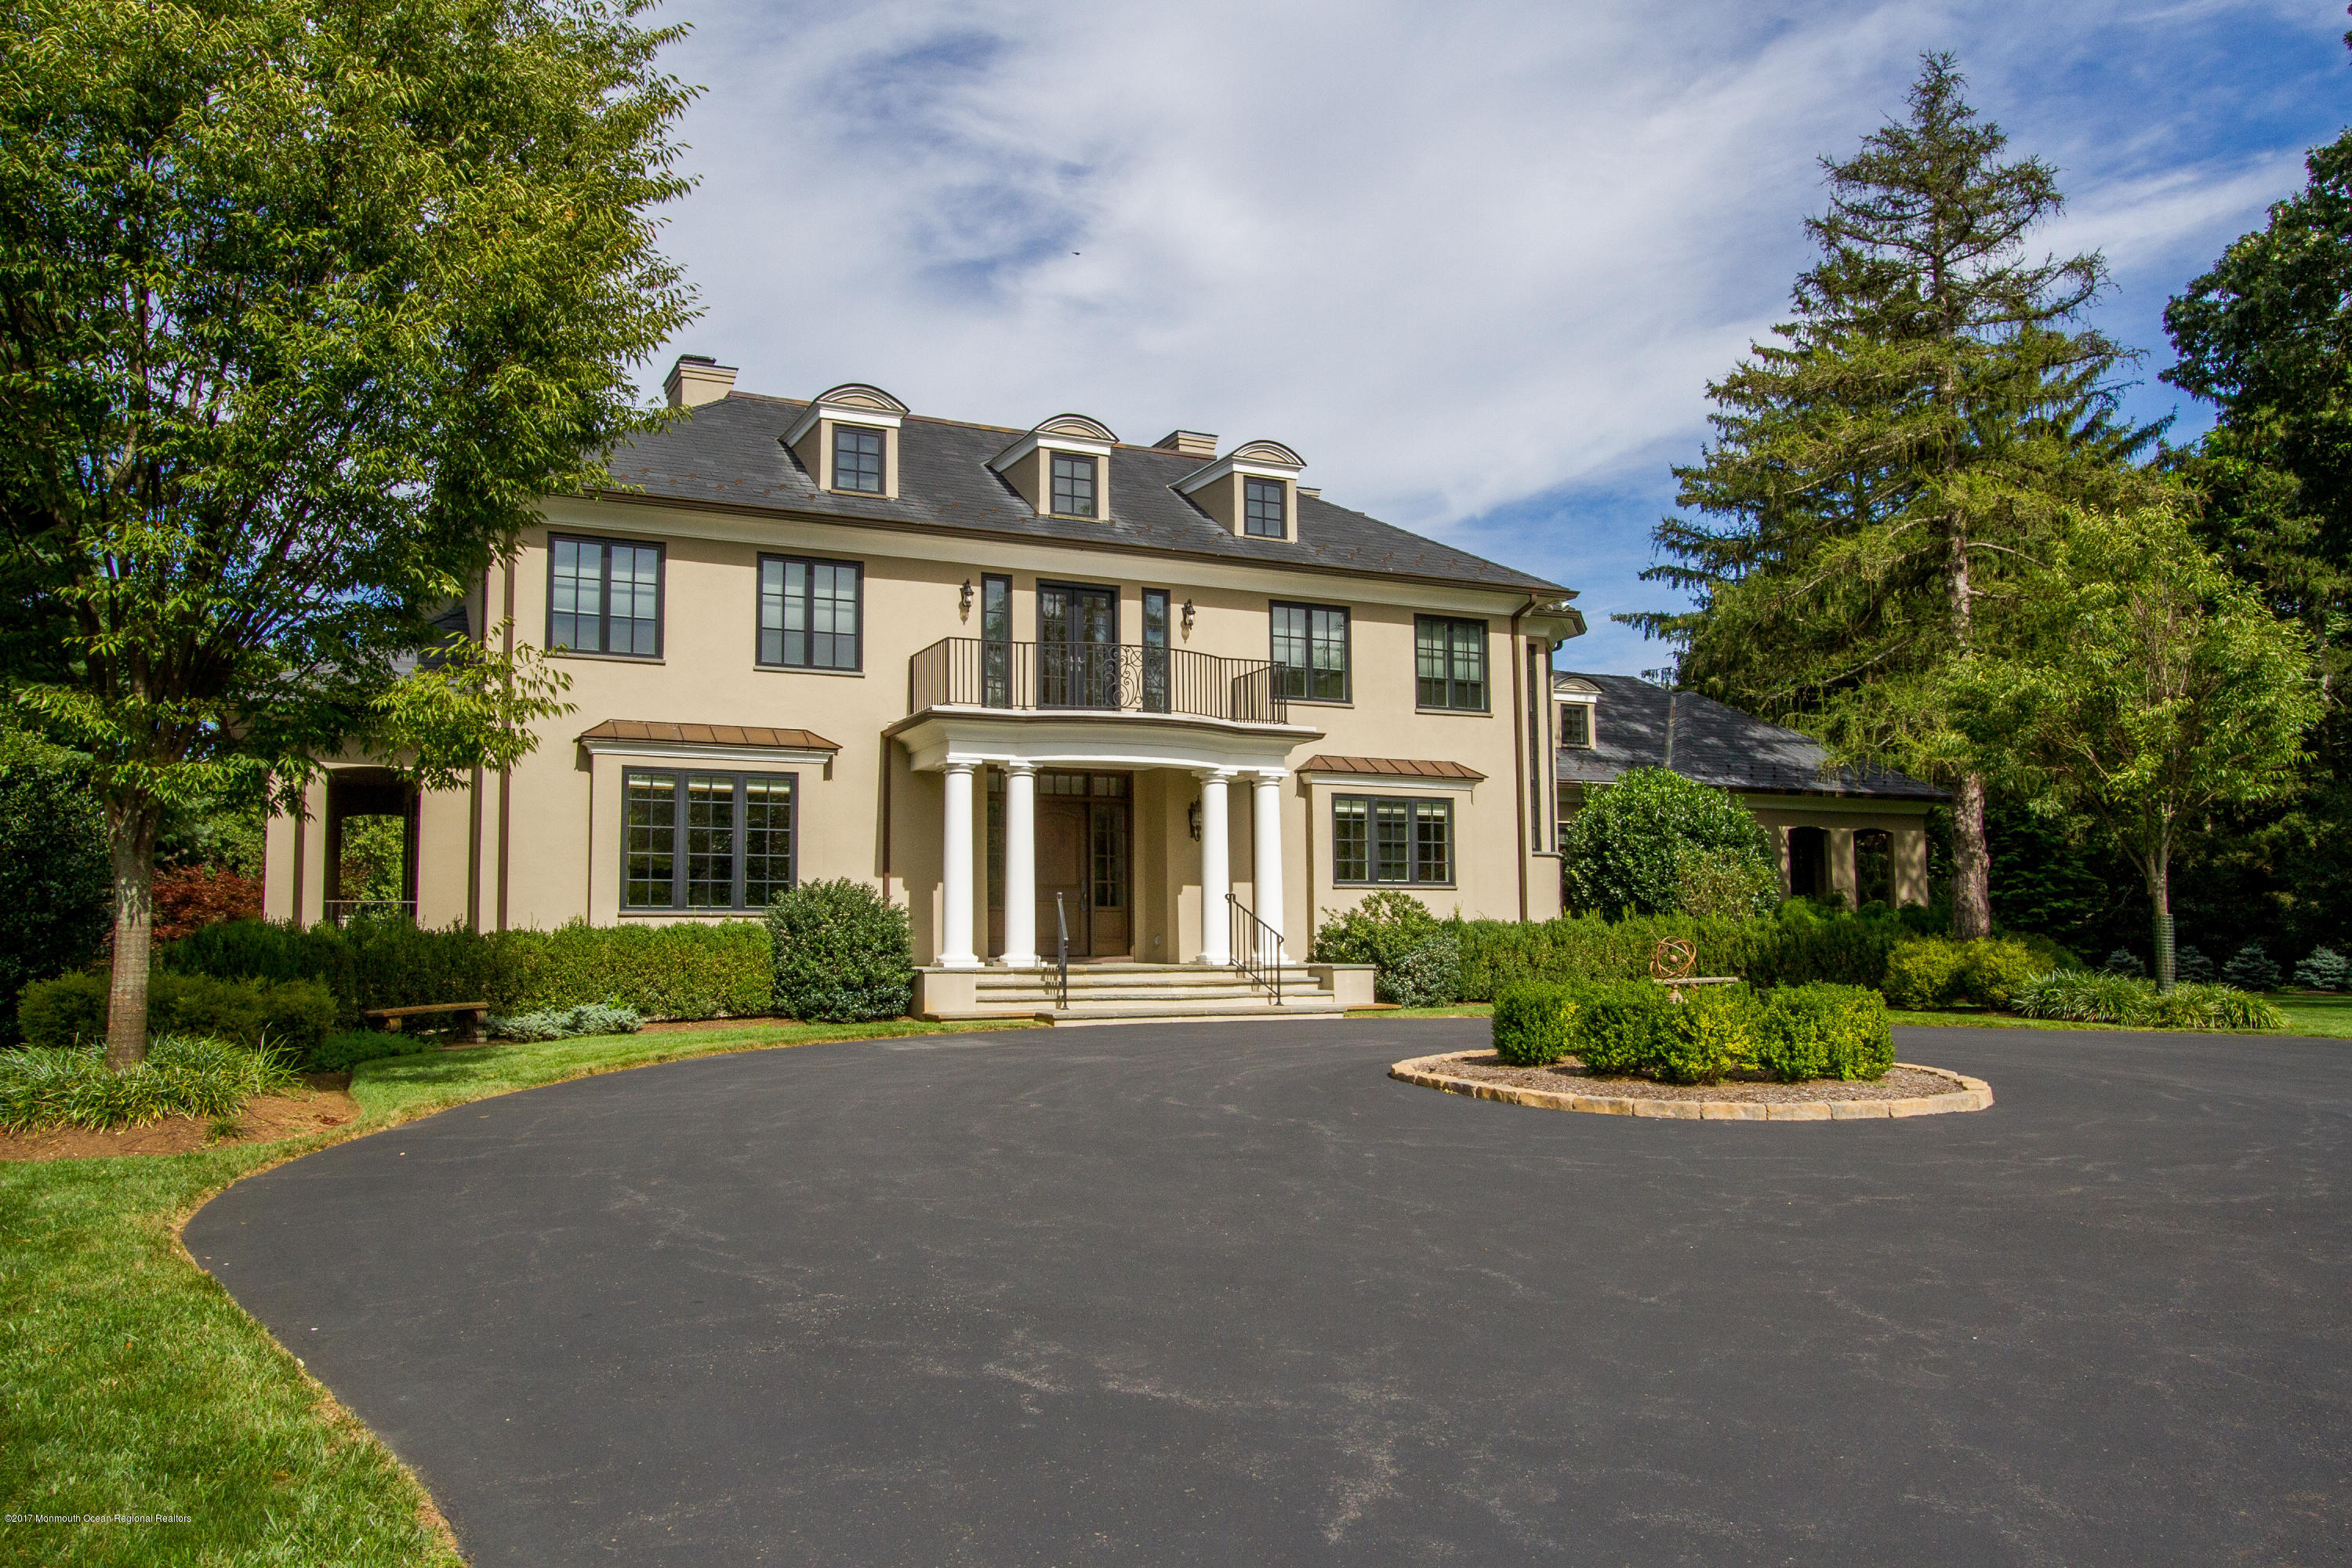 3 LINDEN LANE, RUMSON, NJ 07760